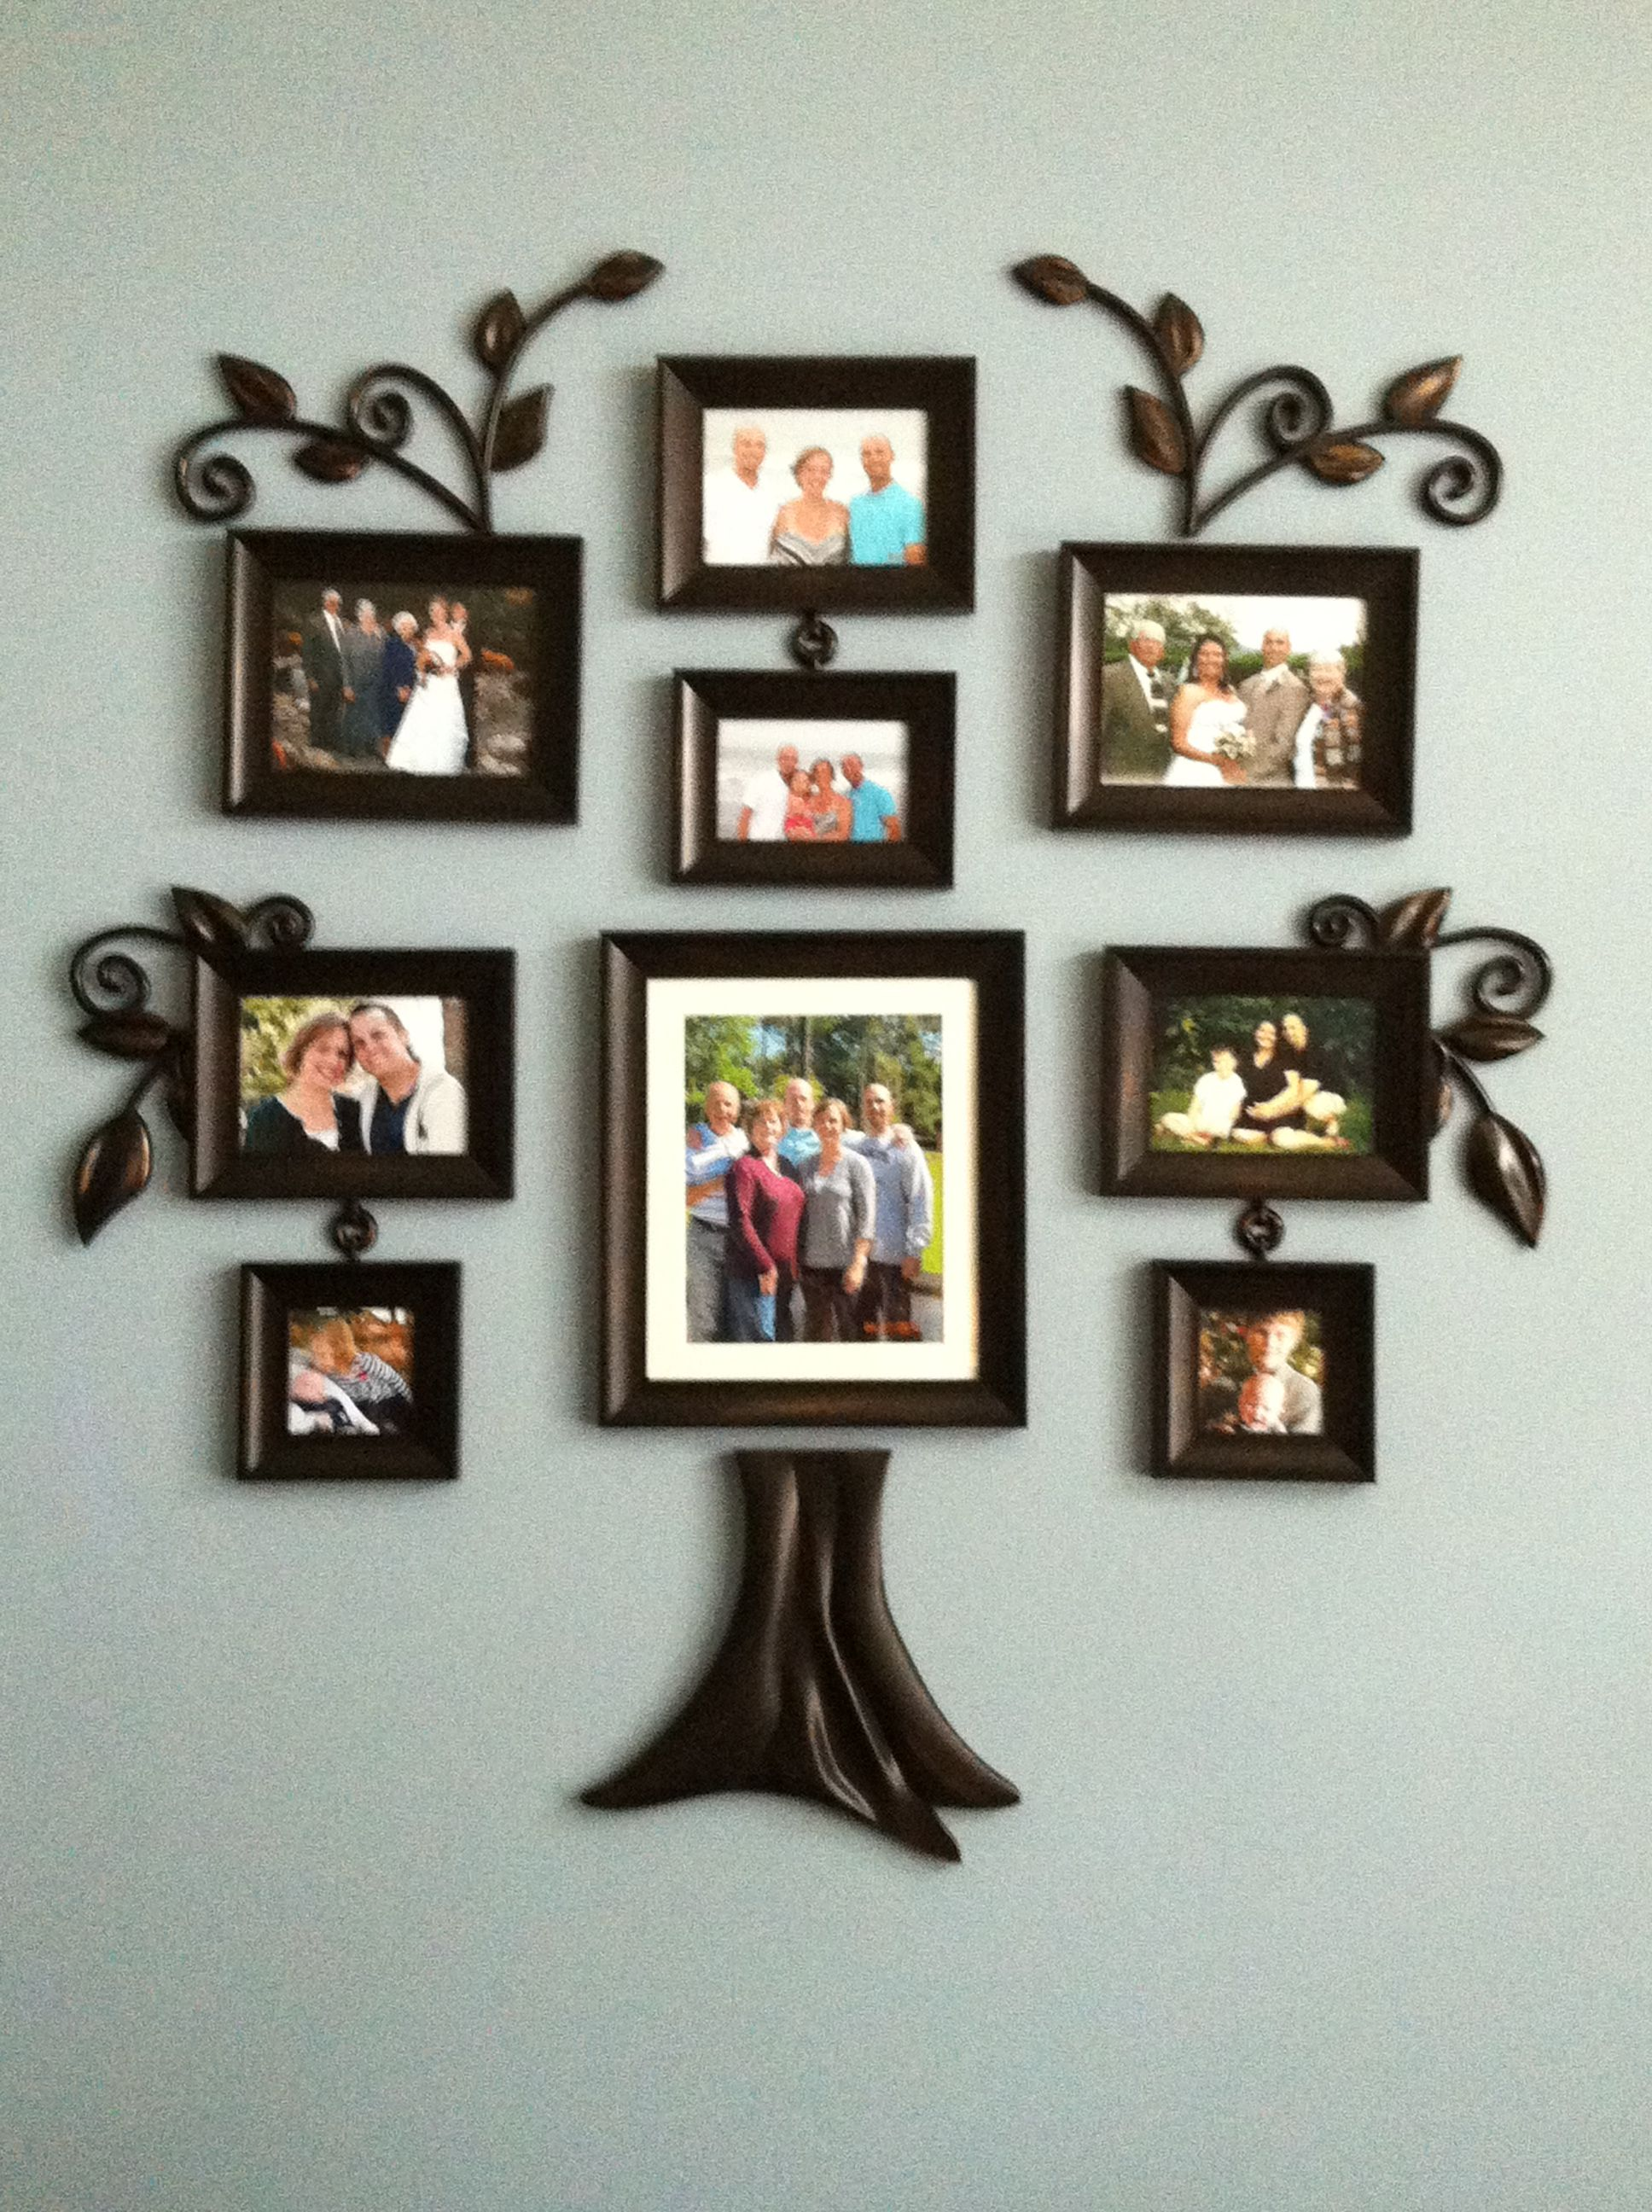 Family Frames Wall Decor family tree made simple supplies: bed, bath & beyond family tree